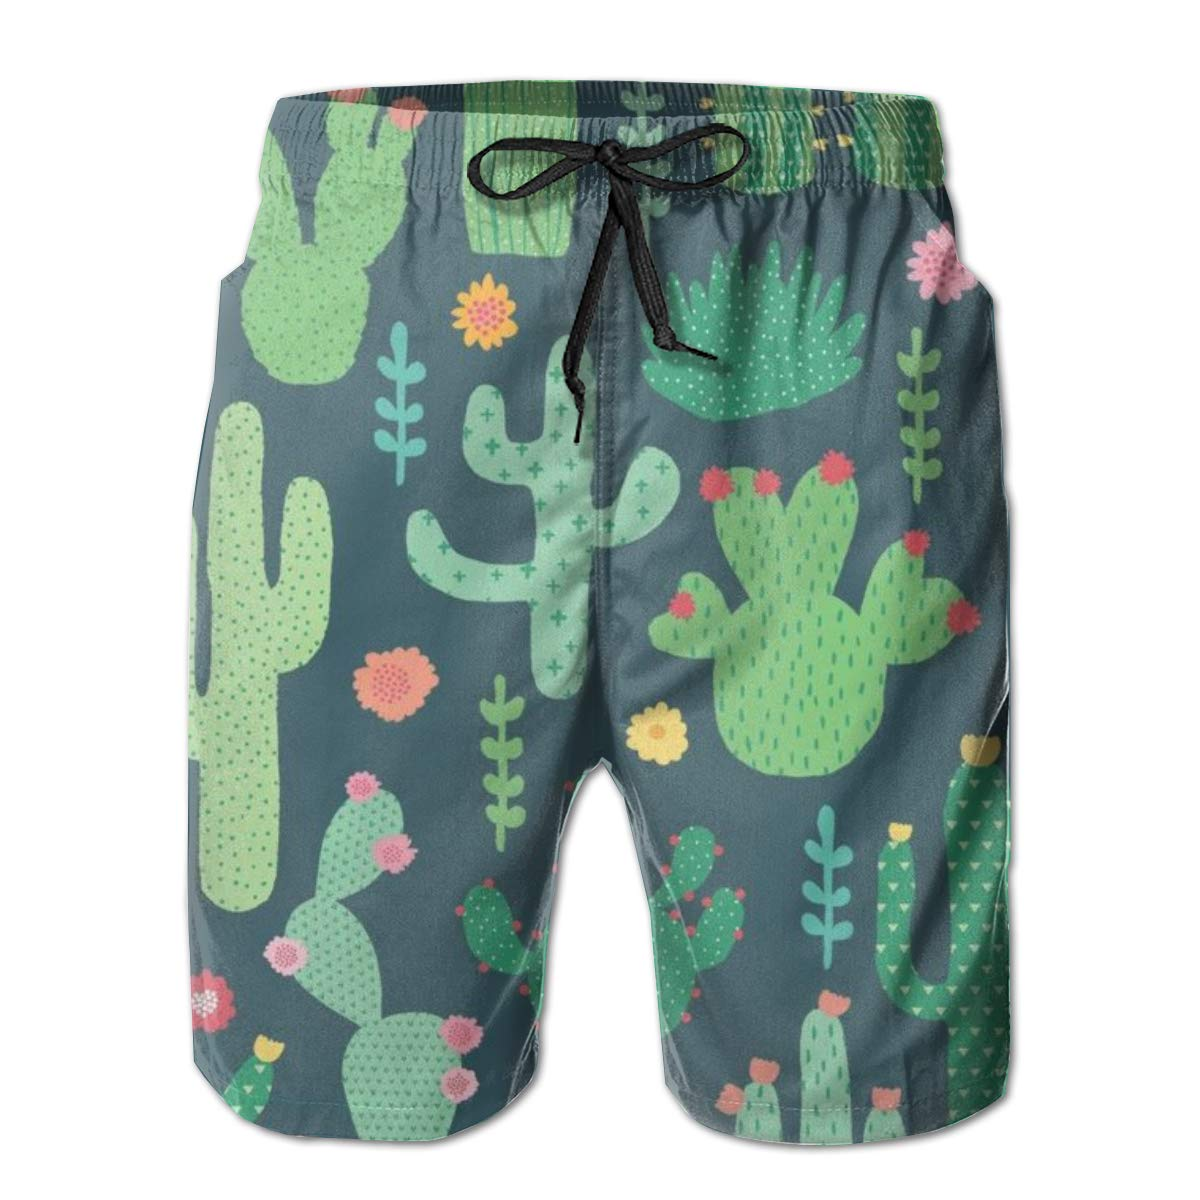 HJSHD Desert Cactus and Flower Green Pattern Board Short Quick Dry Swim Trunks 3D Printed Non-Fading Tropical Short